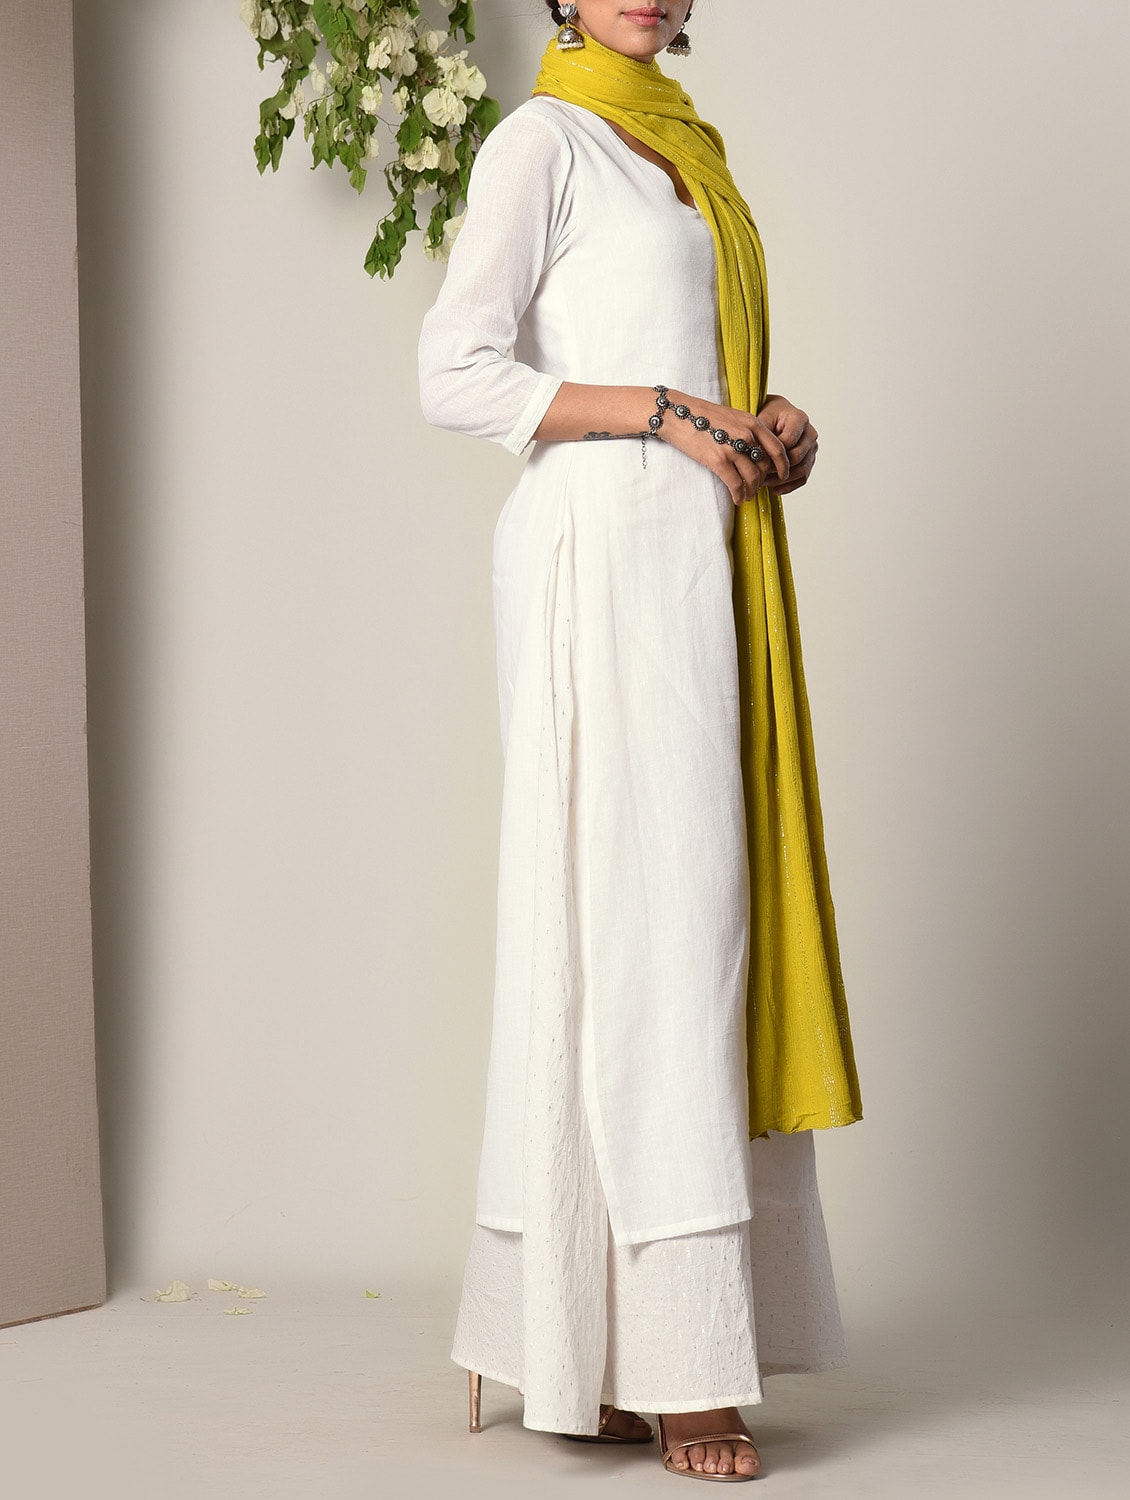 e4c7903e4f2 Buy White Cotton Dress And Dupatta Set for Women from Truebrowns for ₹3532  at 7% off